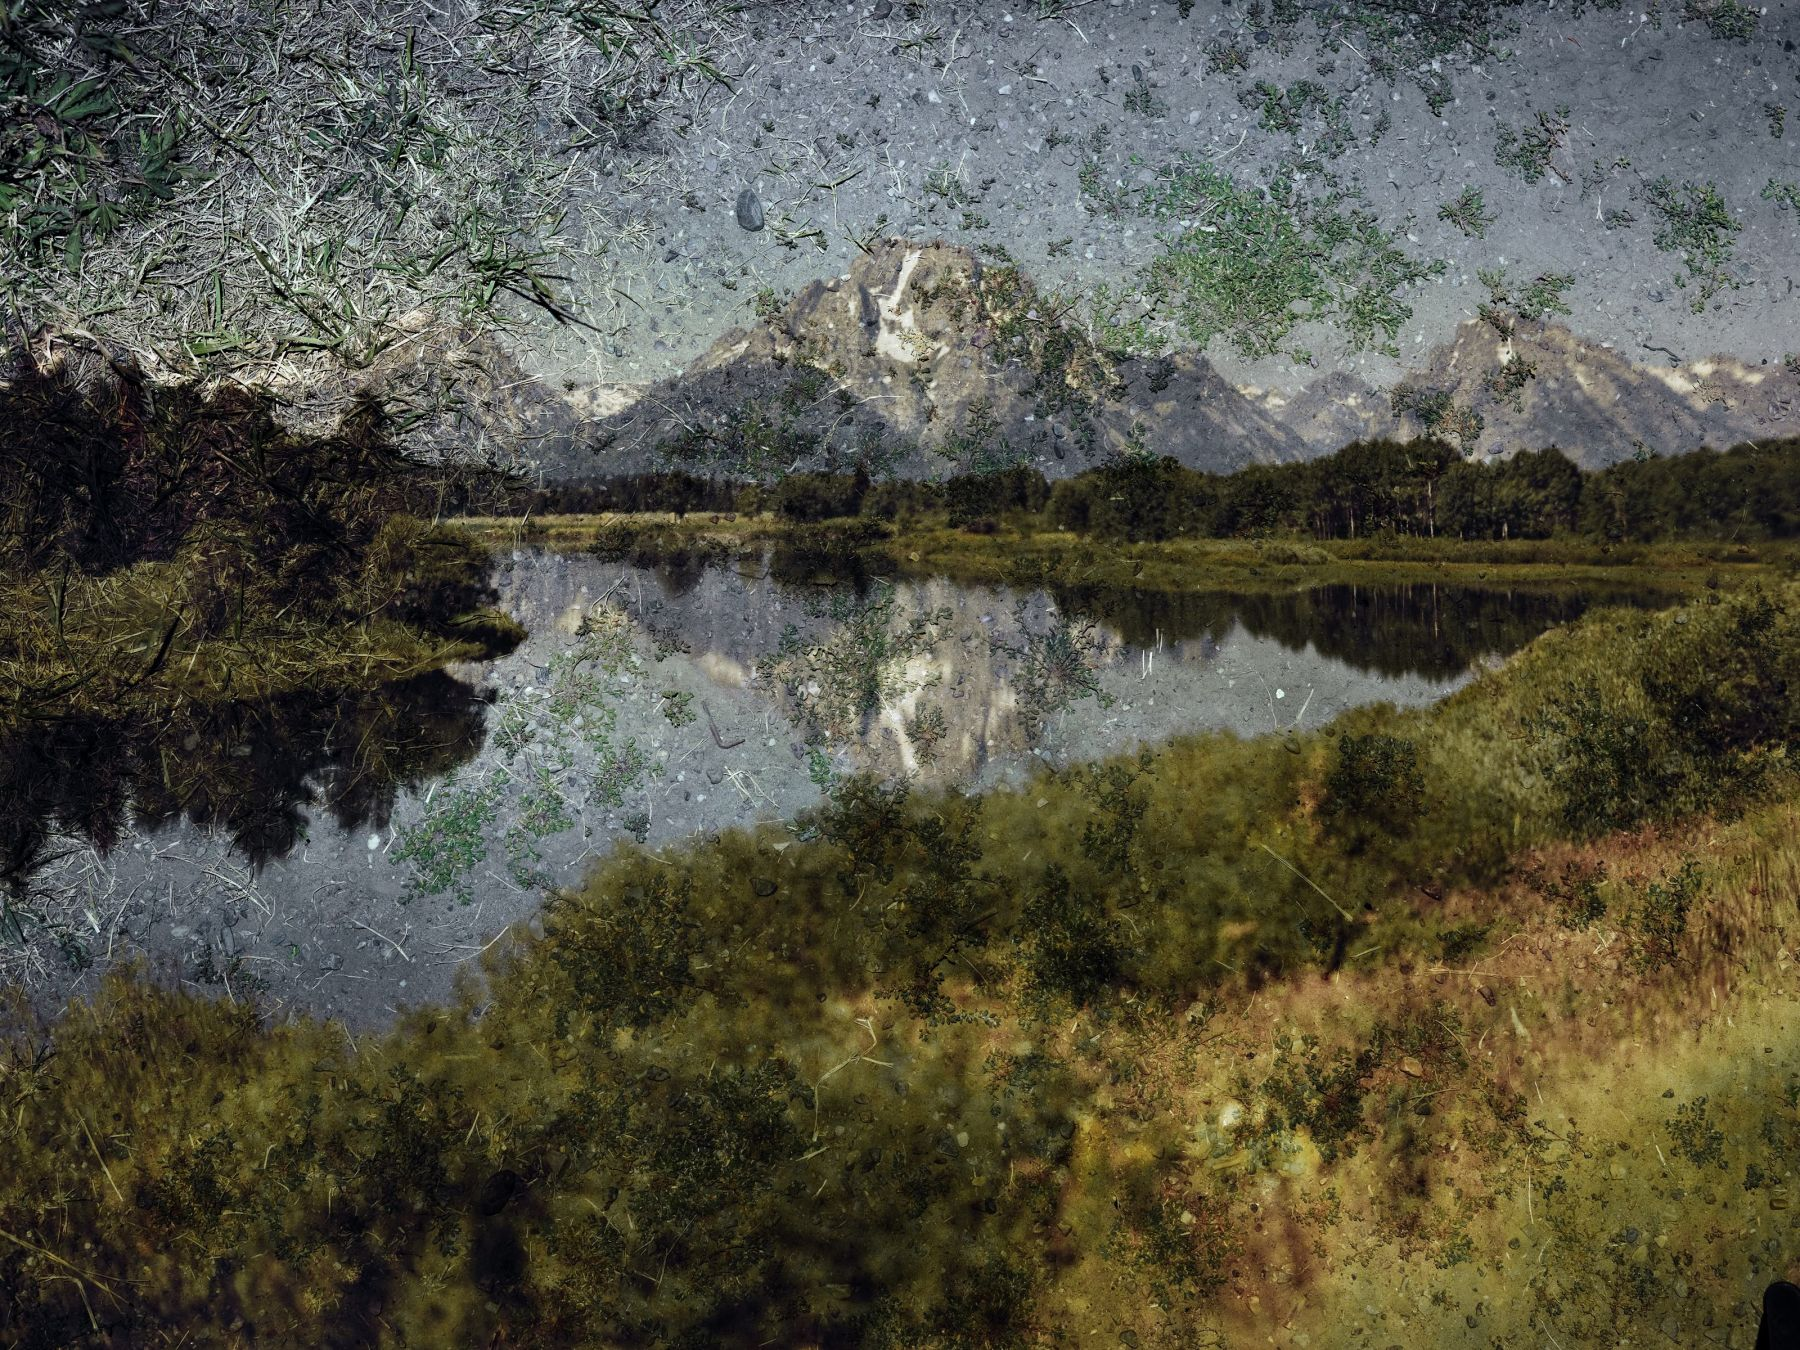 Abelardo Morell Tent-Camera Image On Ground: View of Mount Moran and the Snake River From Oxbow Bend, Grand Teton National Park, Wyoming